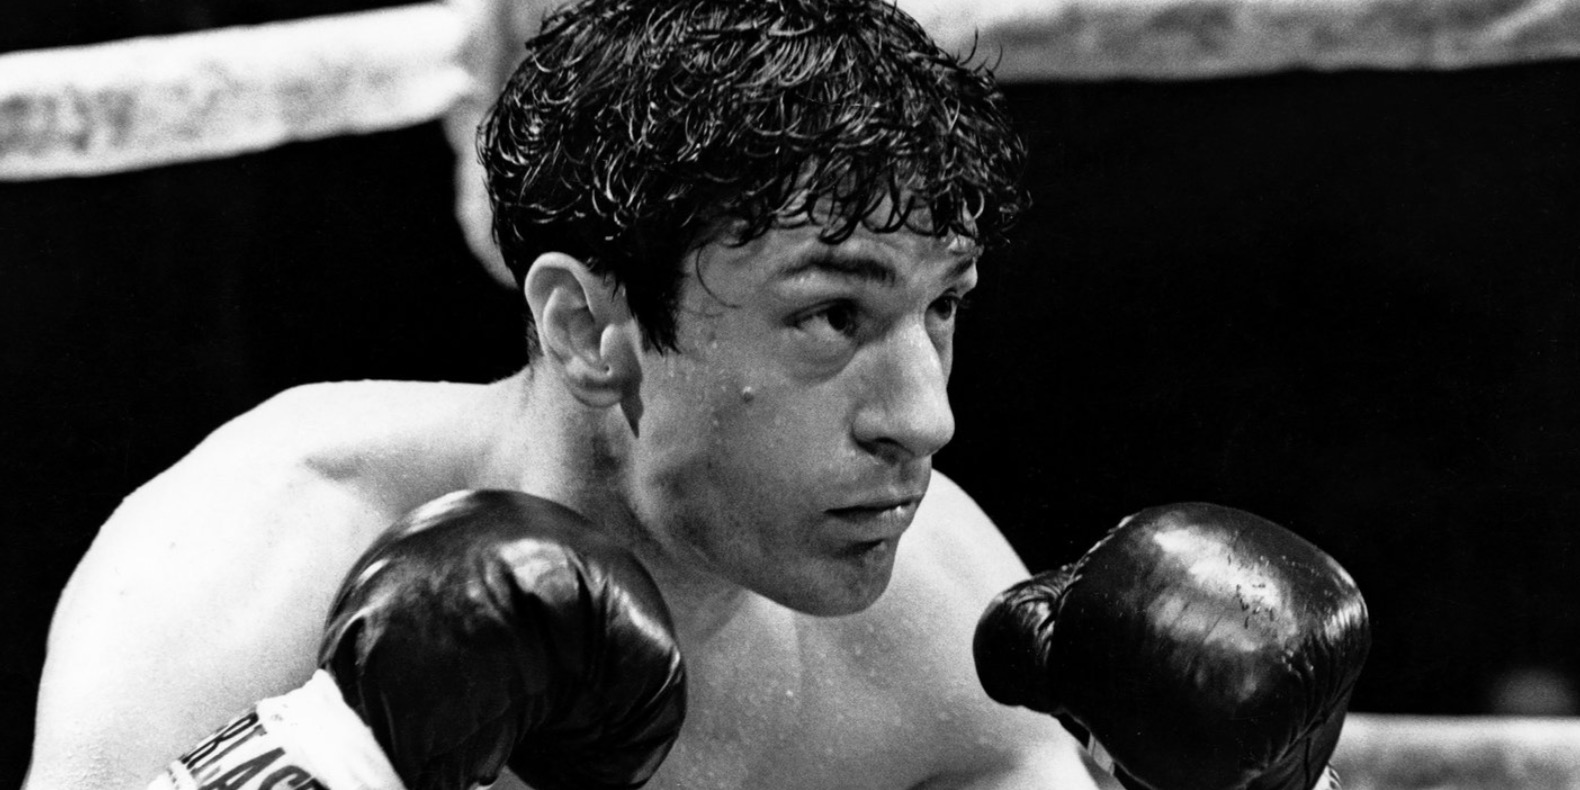 Raging Bull, best actor, movies